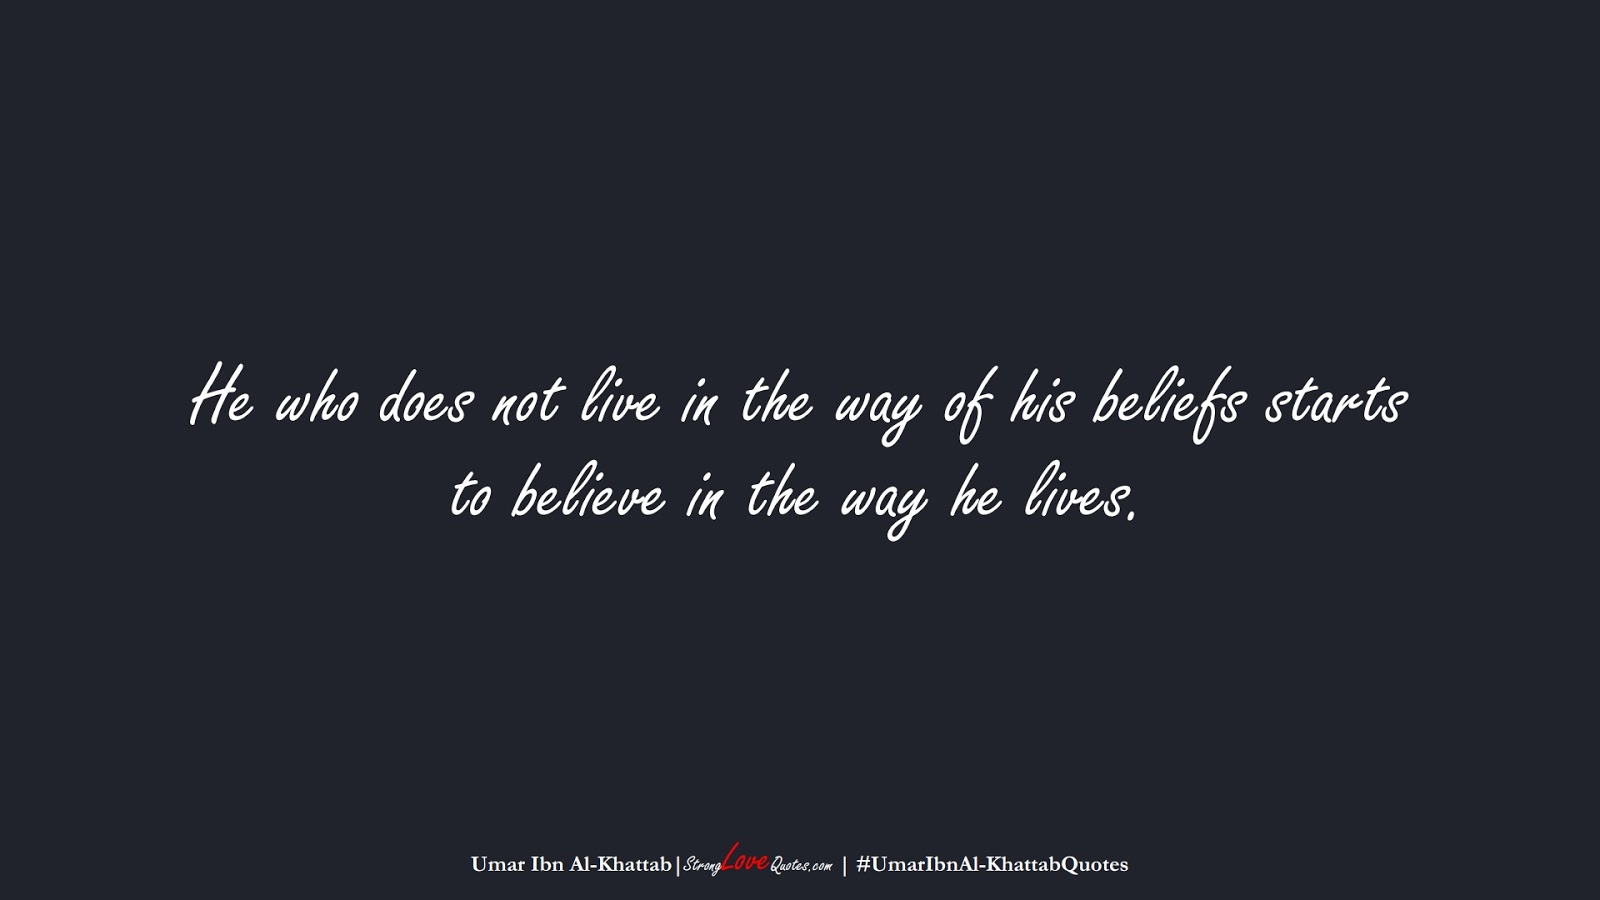 He who does not live in the way of his beliefs starts to believe in the way he lives. (Umar Ibn Al-Khattab);  #UmarIbnAl-KhattabQuotes